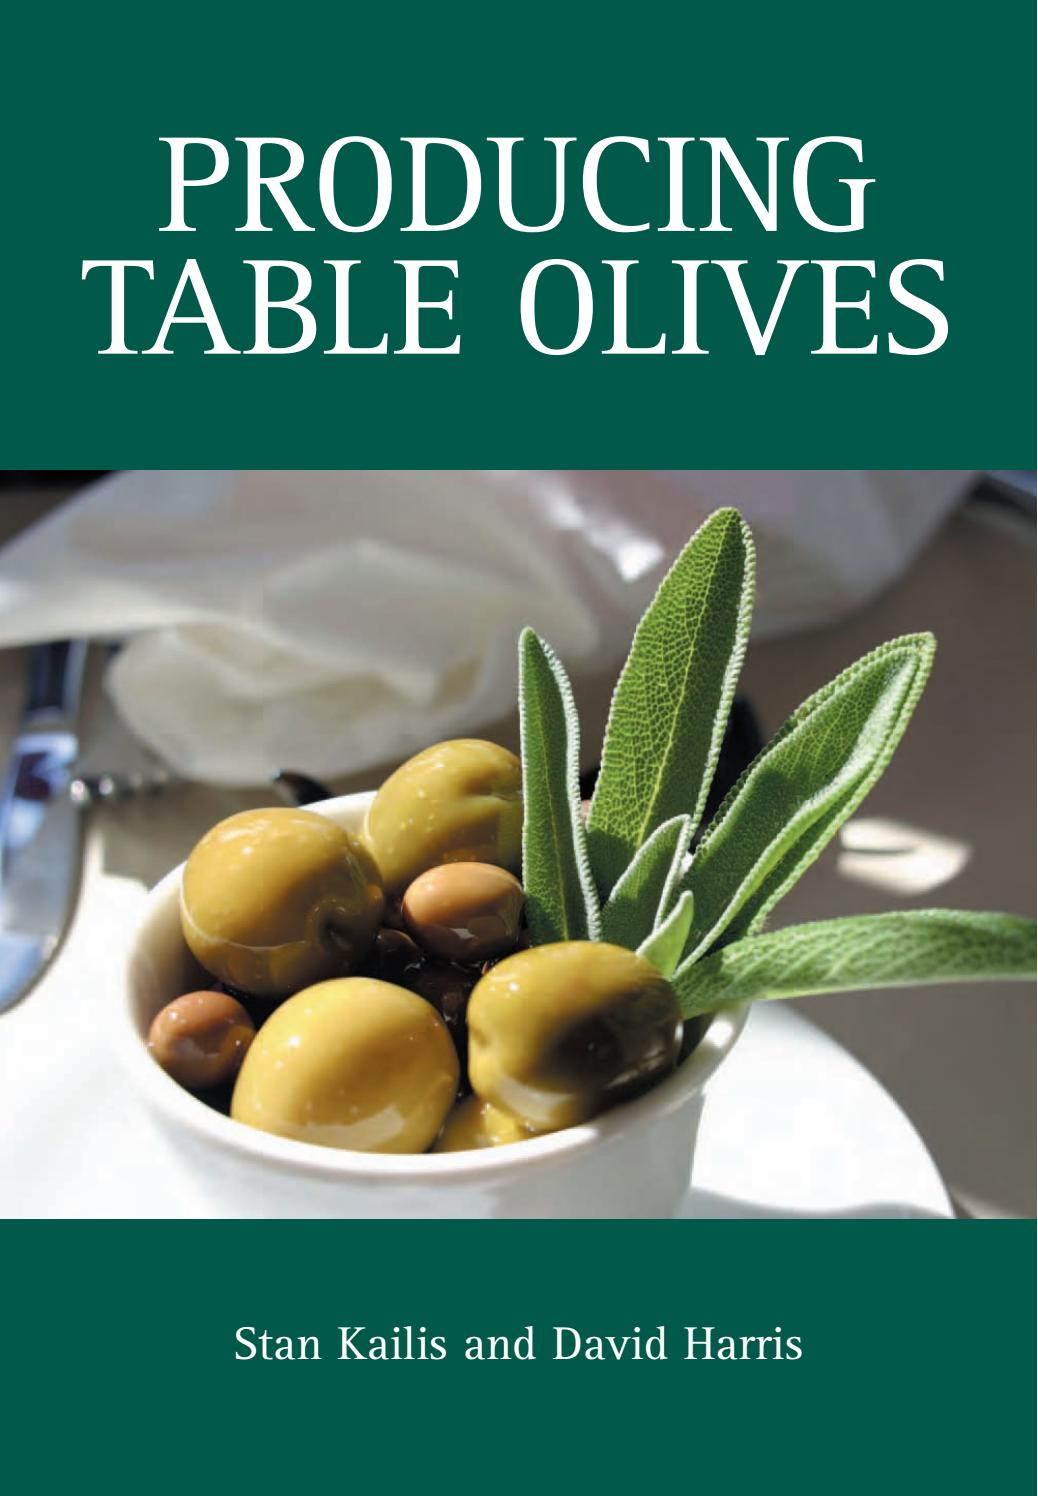 Producing table olives kailis by agrihorti - issuu e39dbc3e37